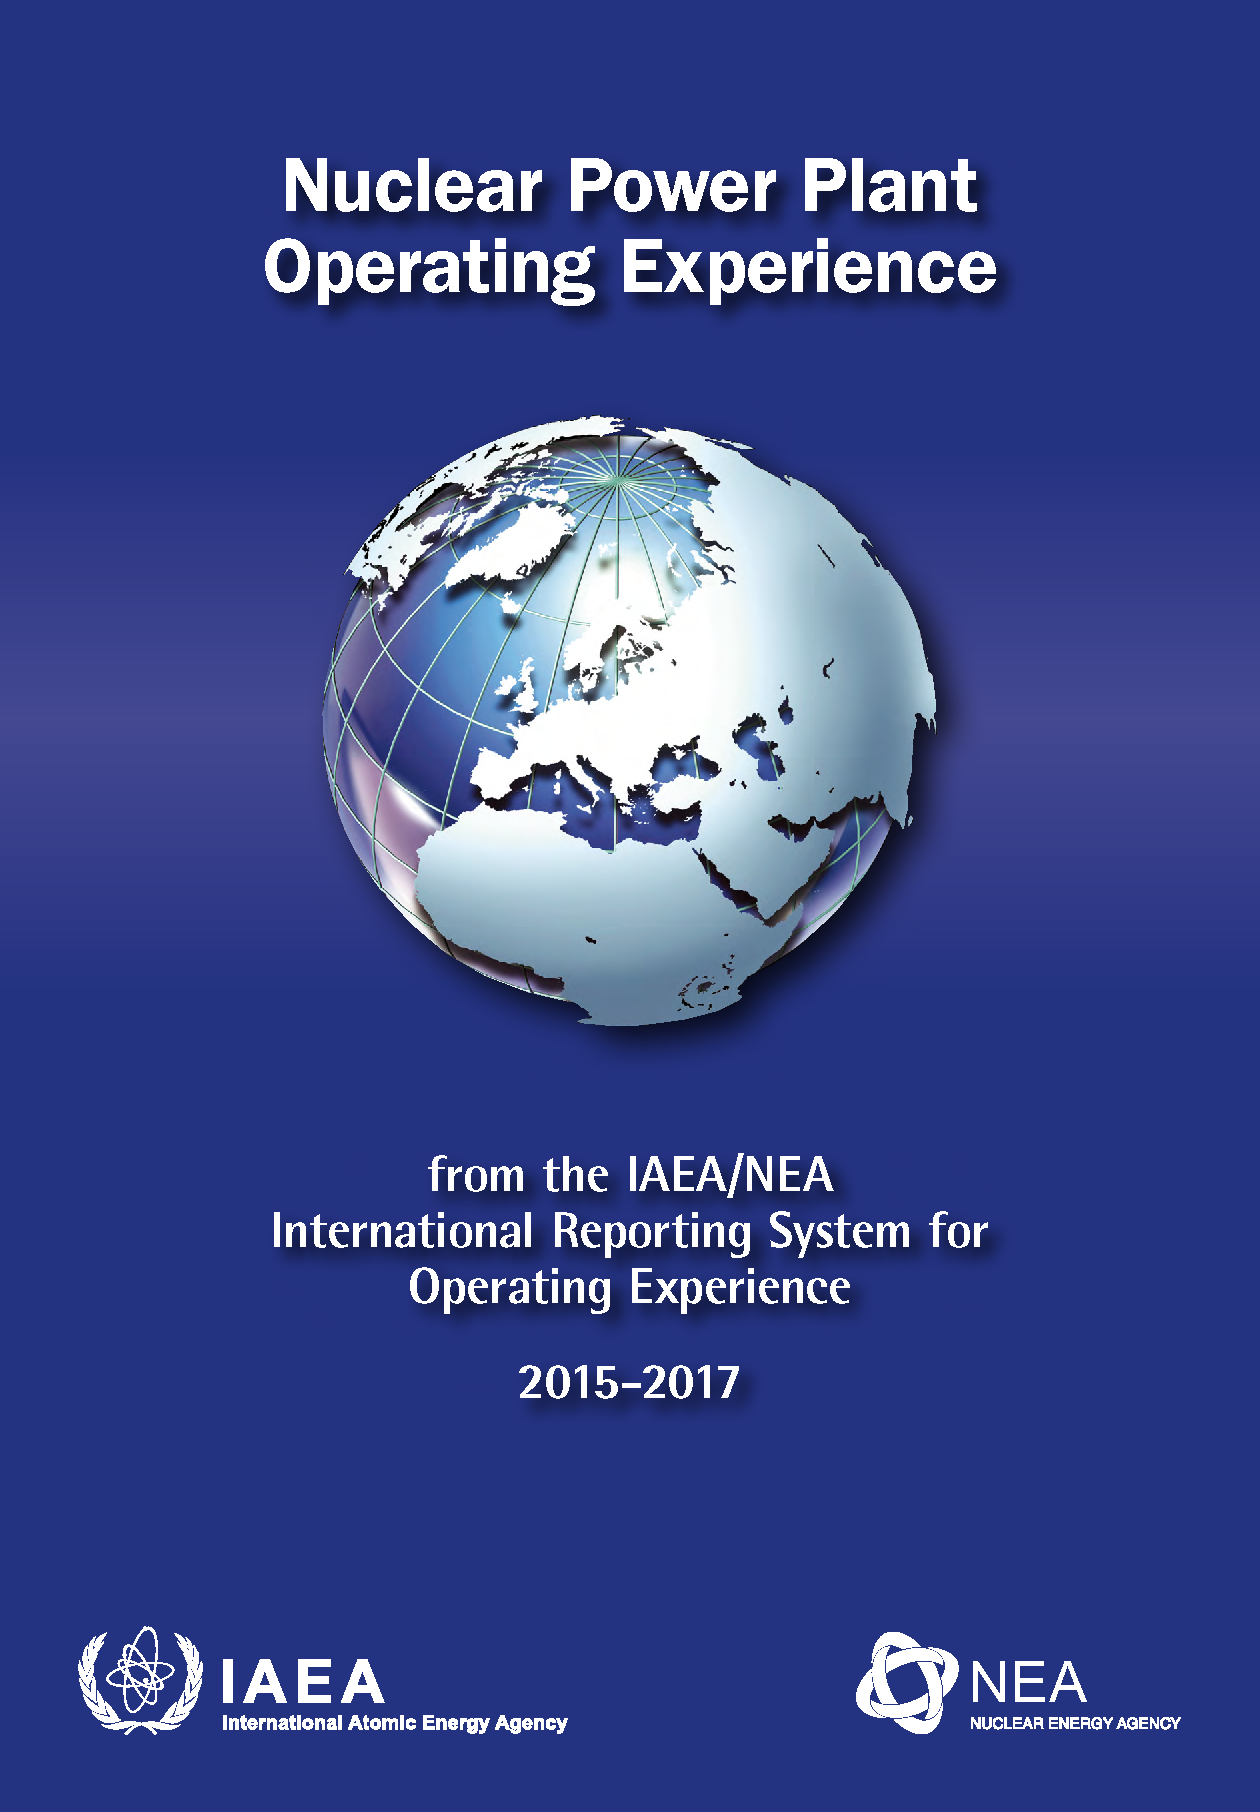 Nuclear Power Plant Operating Experience: from the IAEA/NEA International Reporting System for Operating Experience 2015-2017